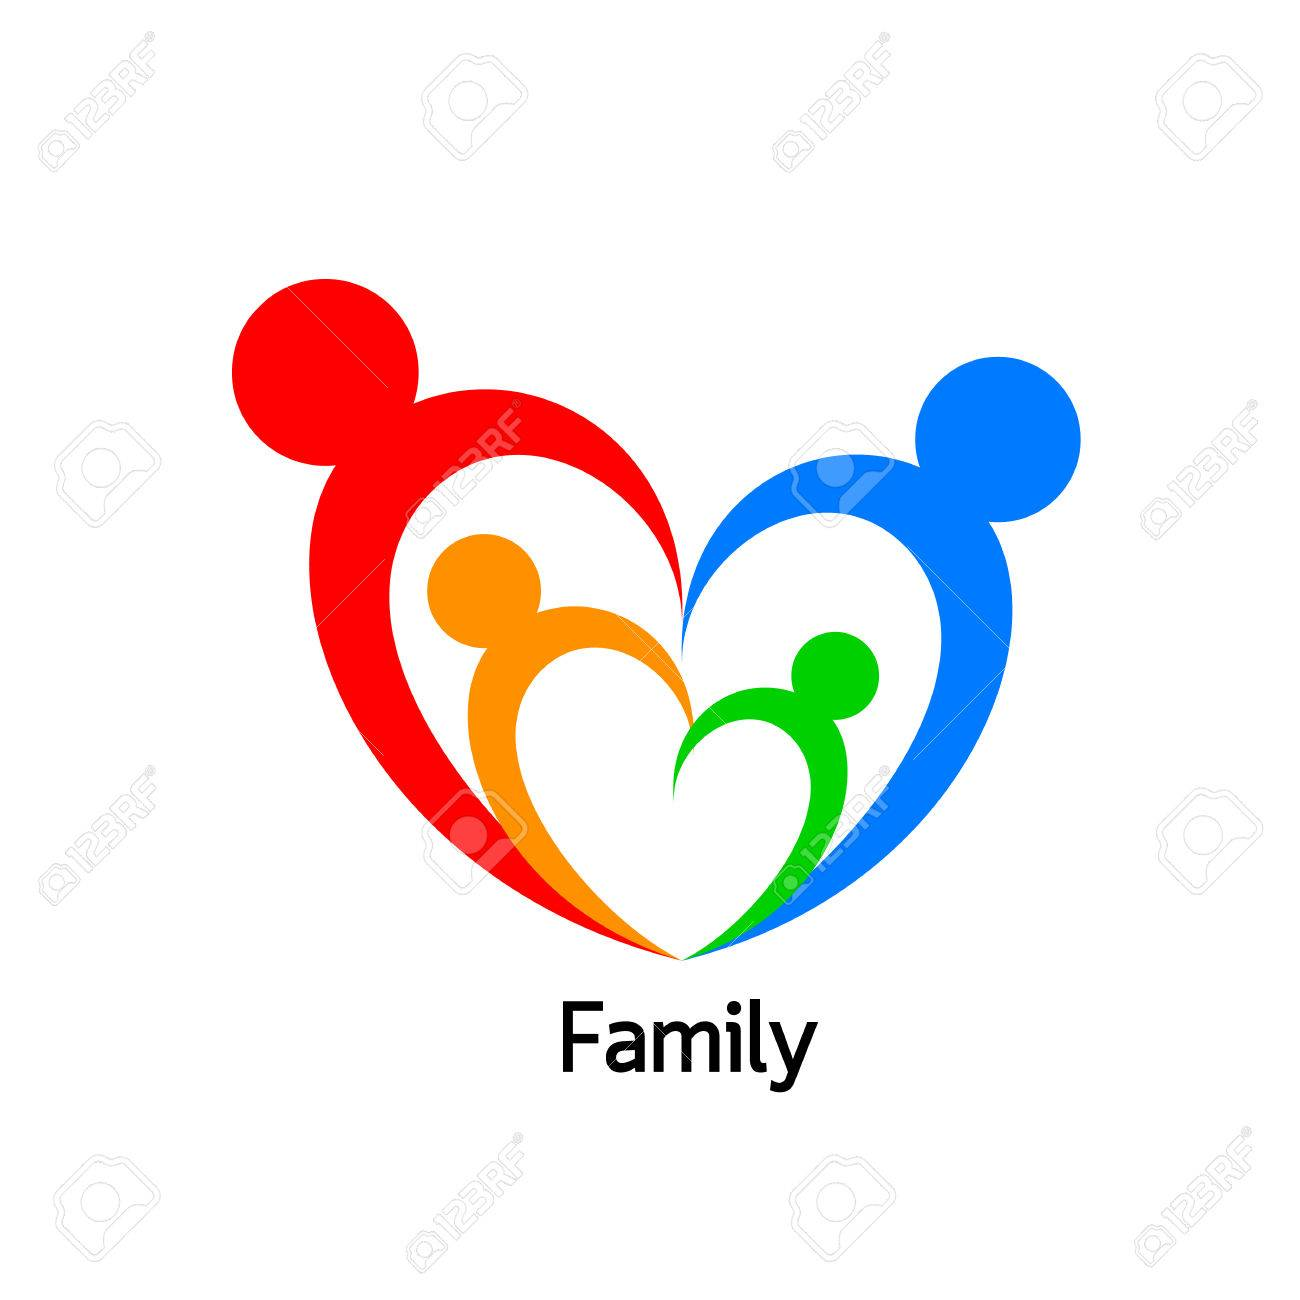 Family Logo In Heart Shape Logo Design Vector Illustration Royalty Free Cliparts Vectors And Stock Illustration Image 76955025